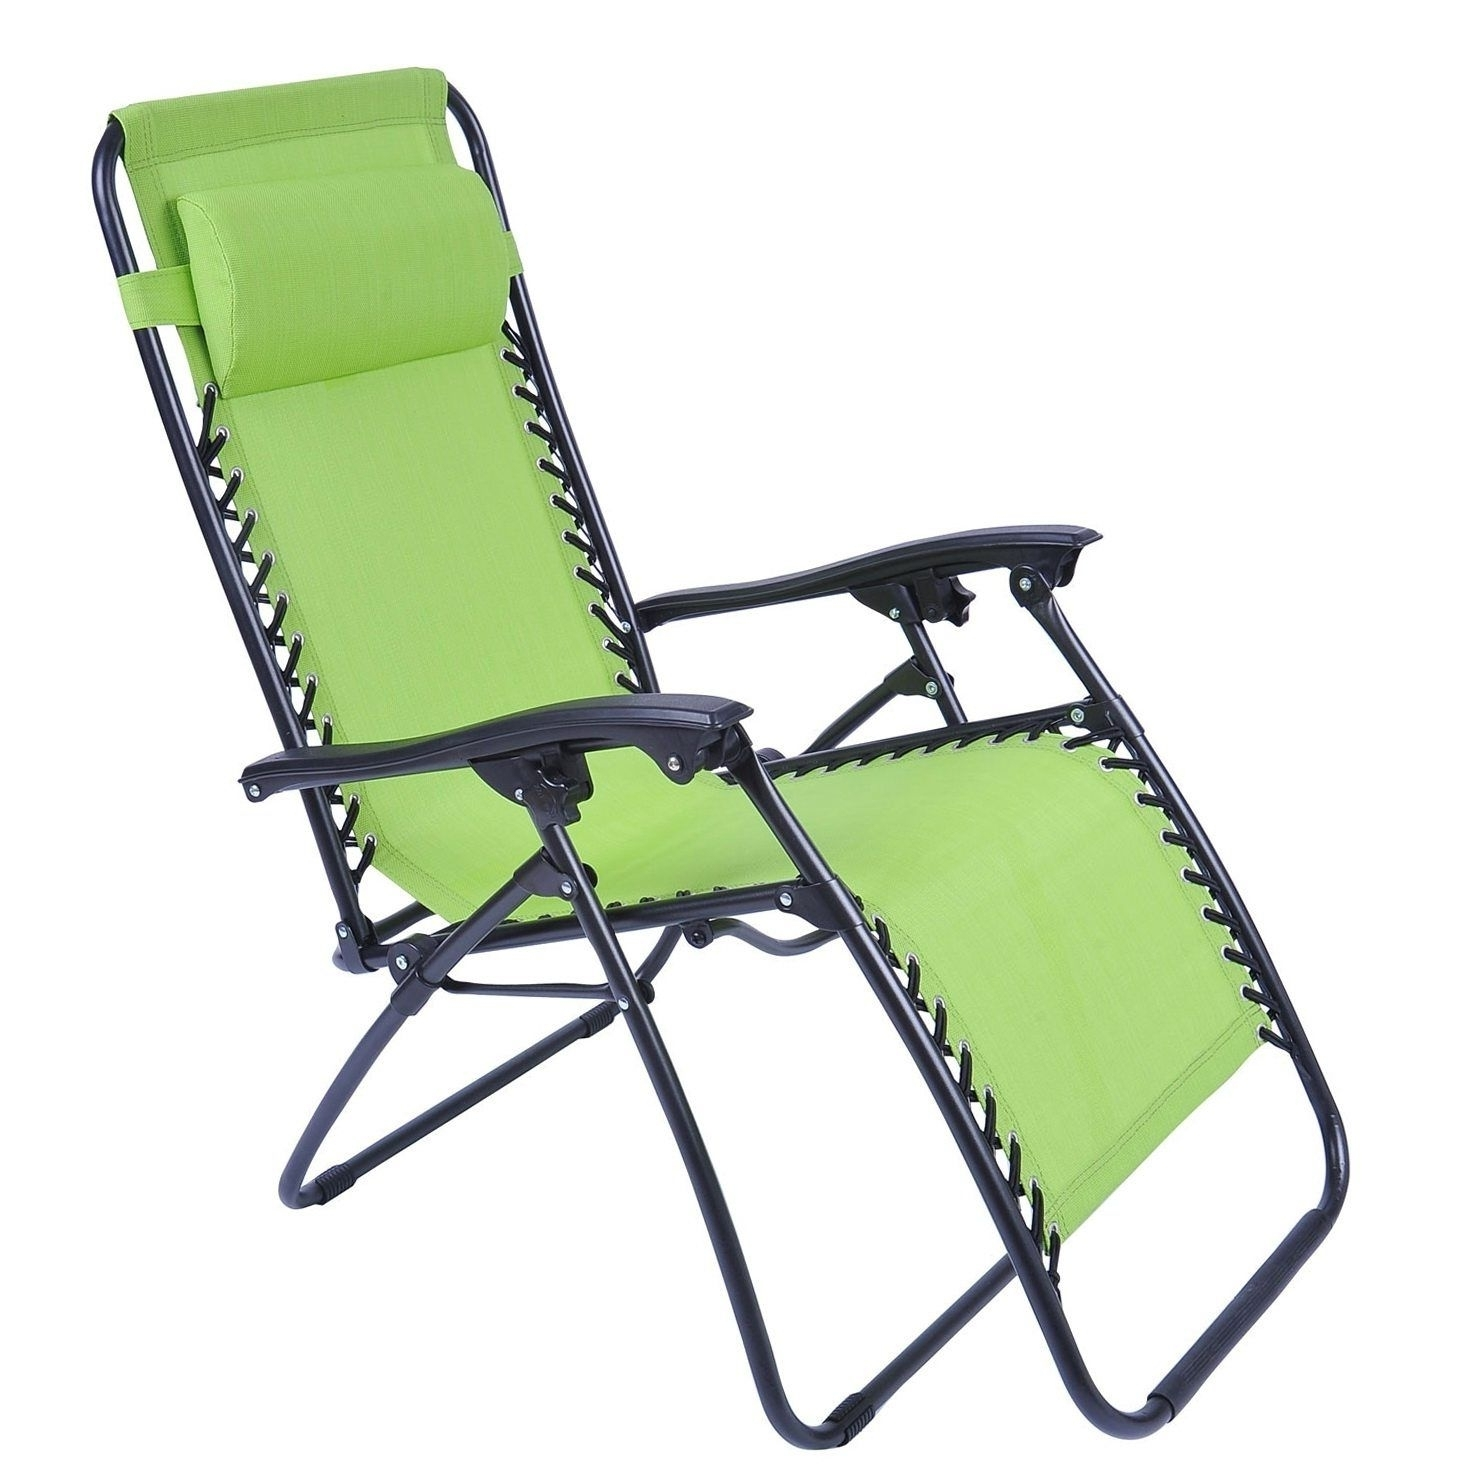 Lounge Chair Outdoor Folding Folding Chaise Lounge Chair Patio In Well Known Foldable Chaise Lounges (View 12 of 15)